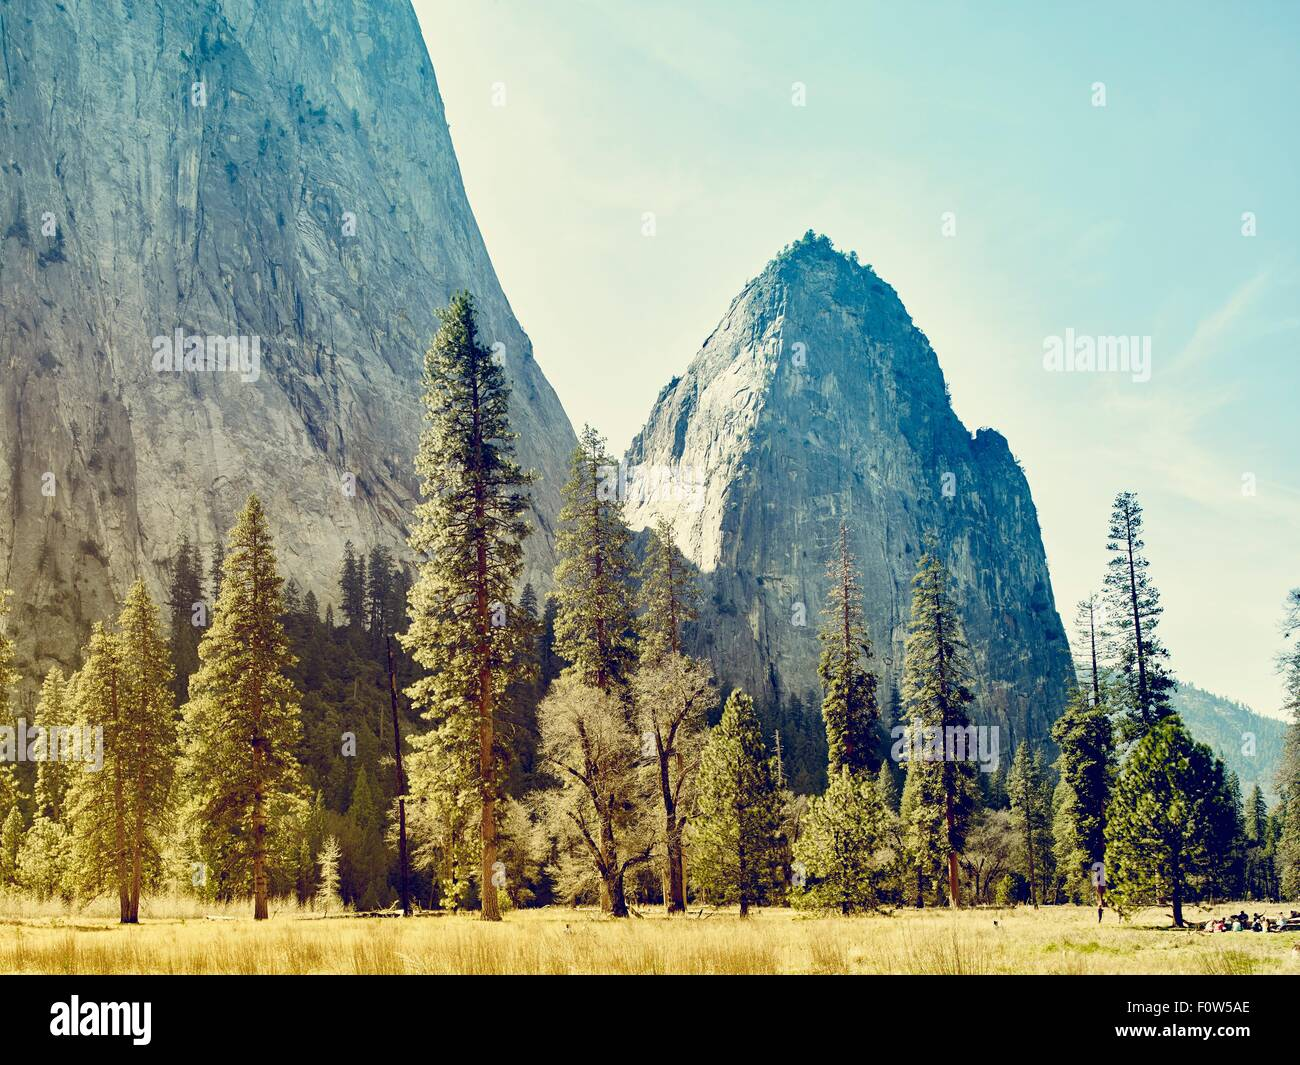 Mountains and forest, Yosemite National Park, California, USA - Stock Image